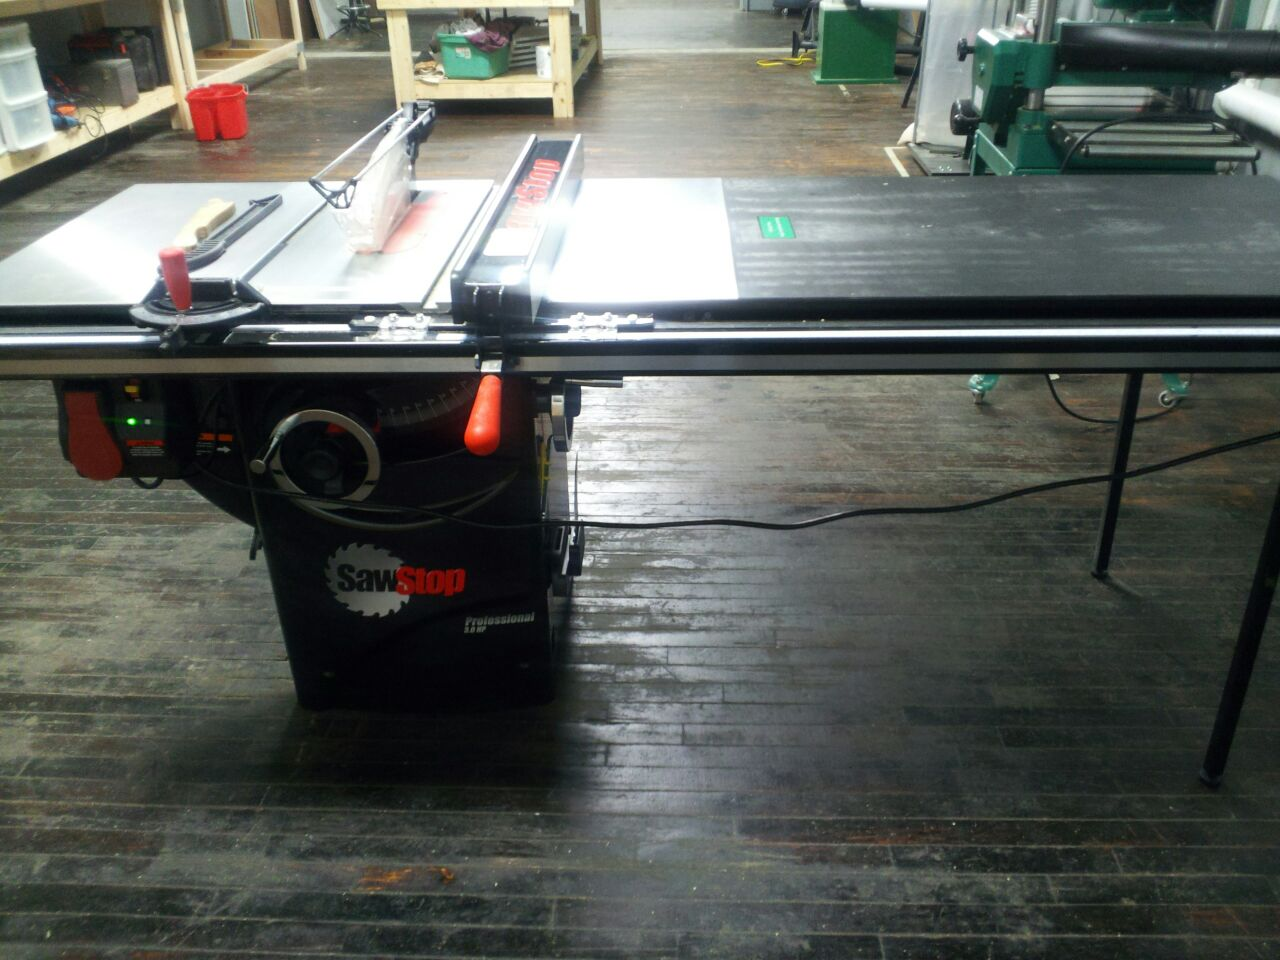 Used Sawstop Table Saw Oliver Wood Lathe For Sale